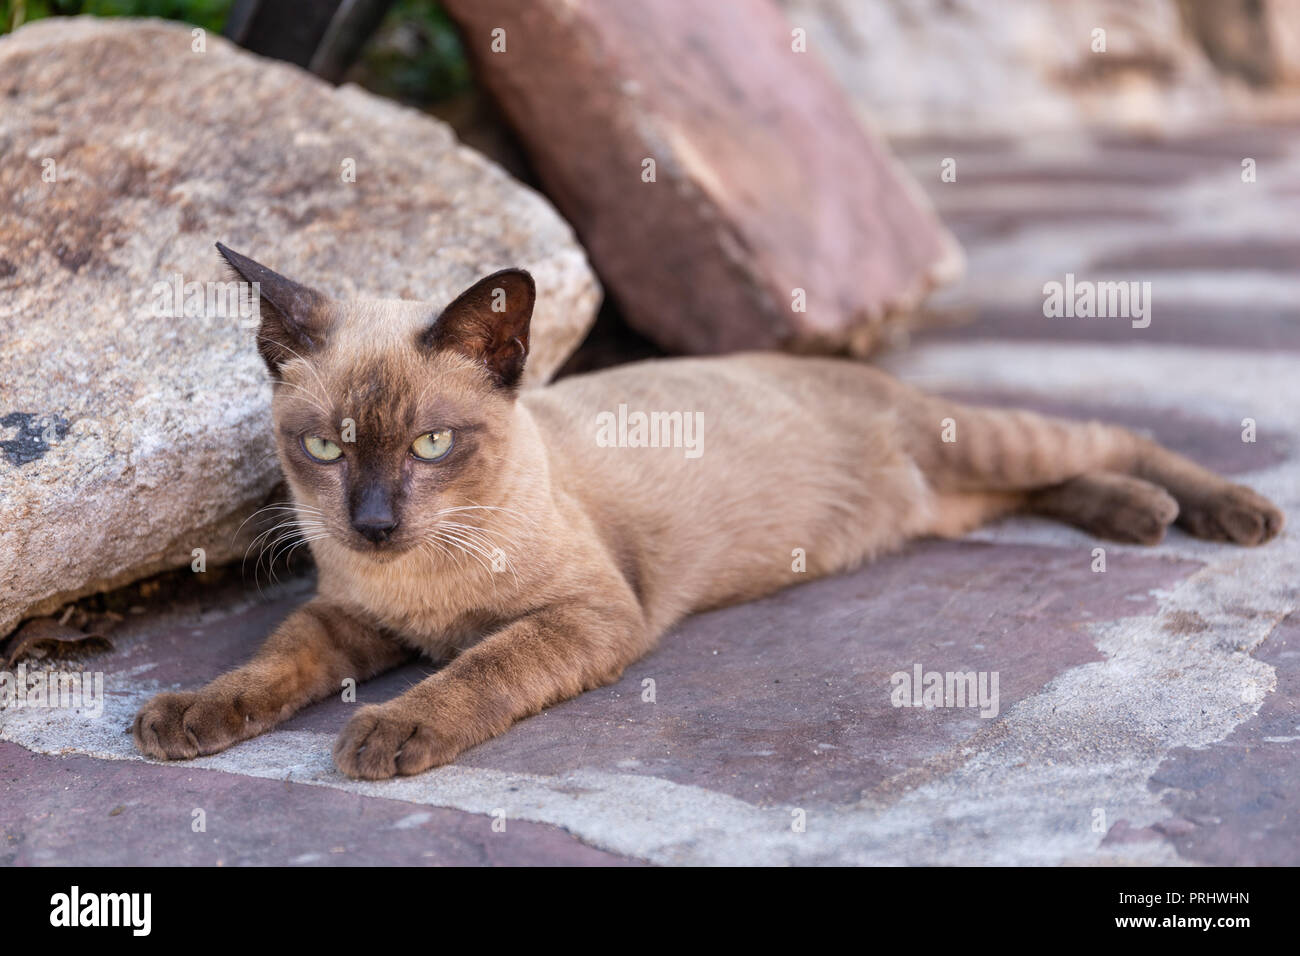 The Siamese Cat in the temple in the Bangkok, Thailand - Stock Image